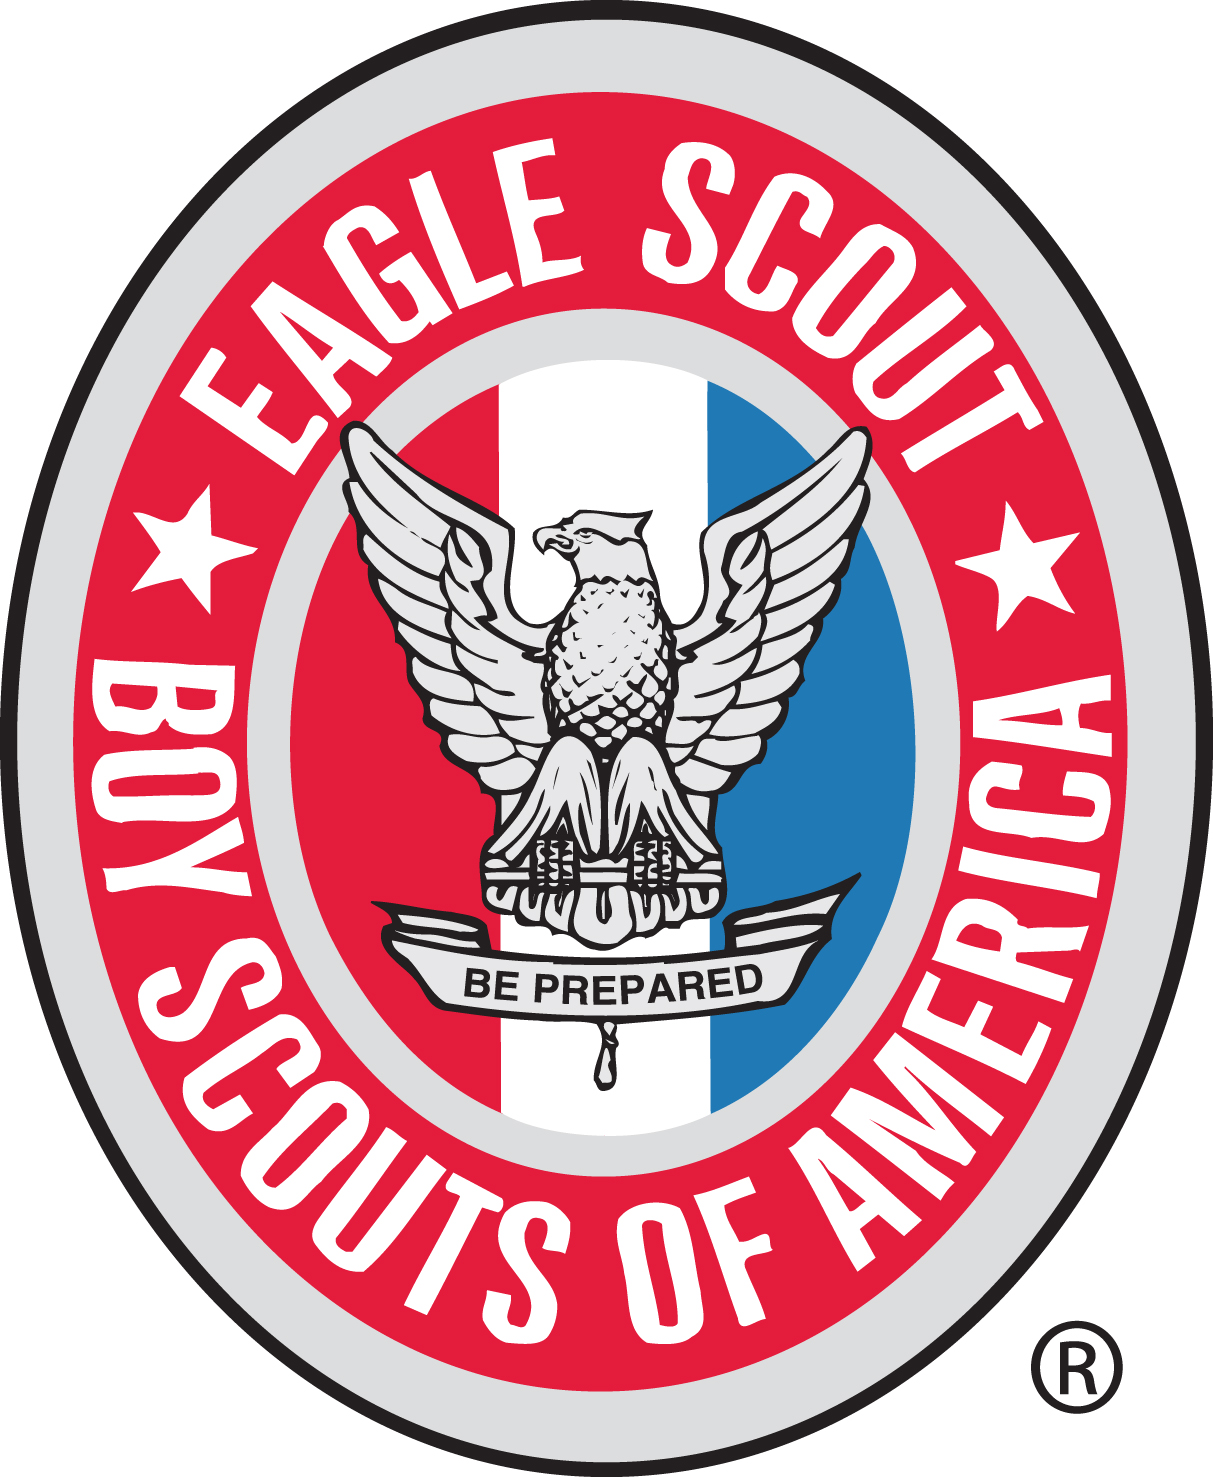 Clip Art Eagle Scout Clipart eagle scout badge clipart best large and medal image for presentations badges eagles dylan obrien